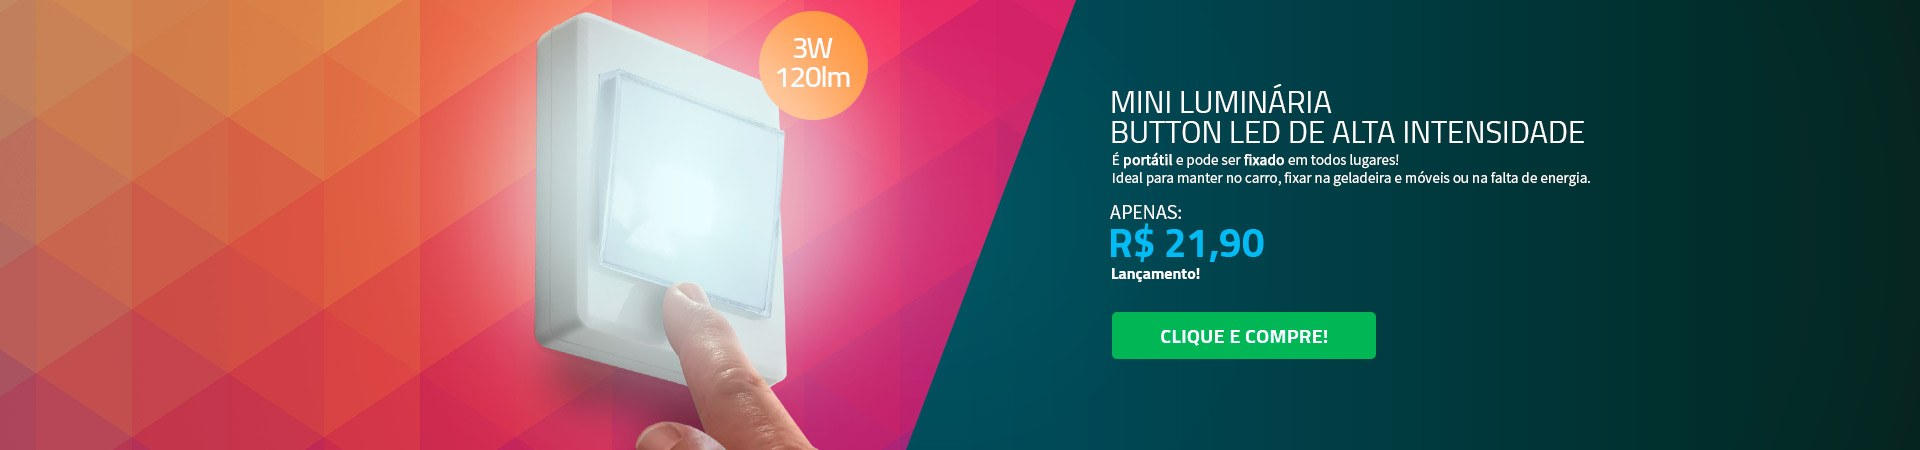 Banner-Home-Button-LED